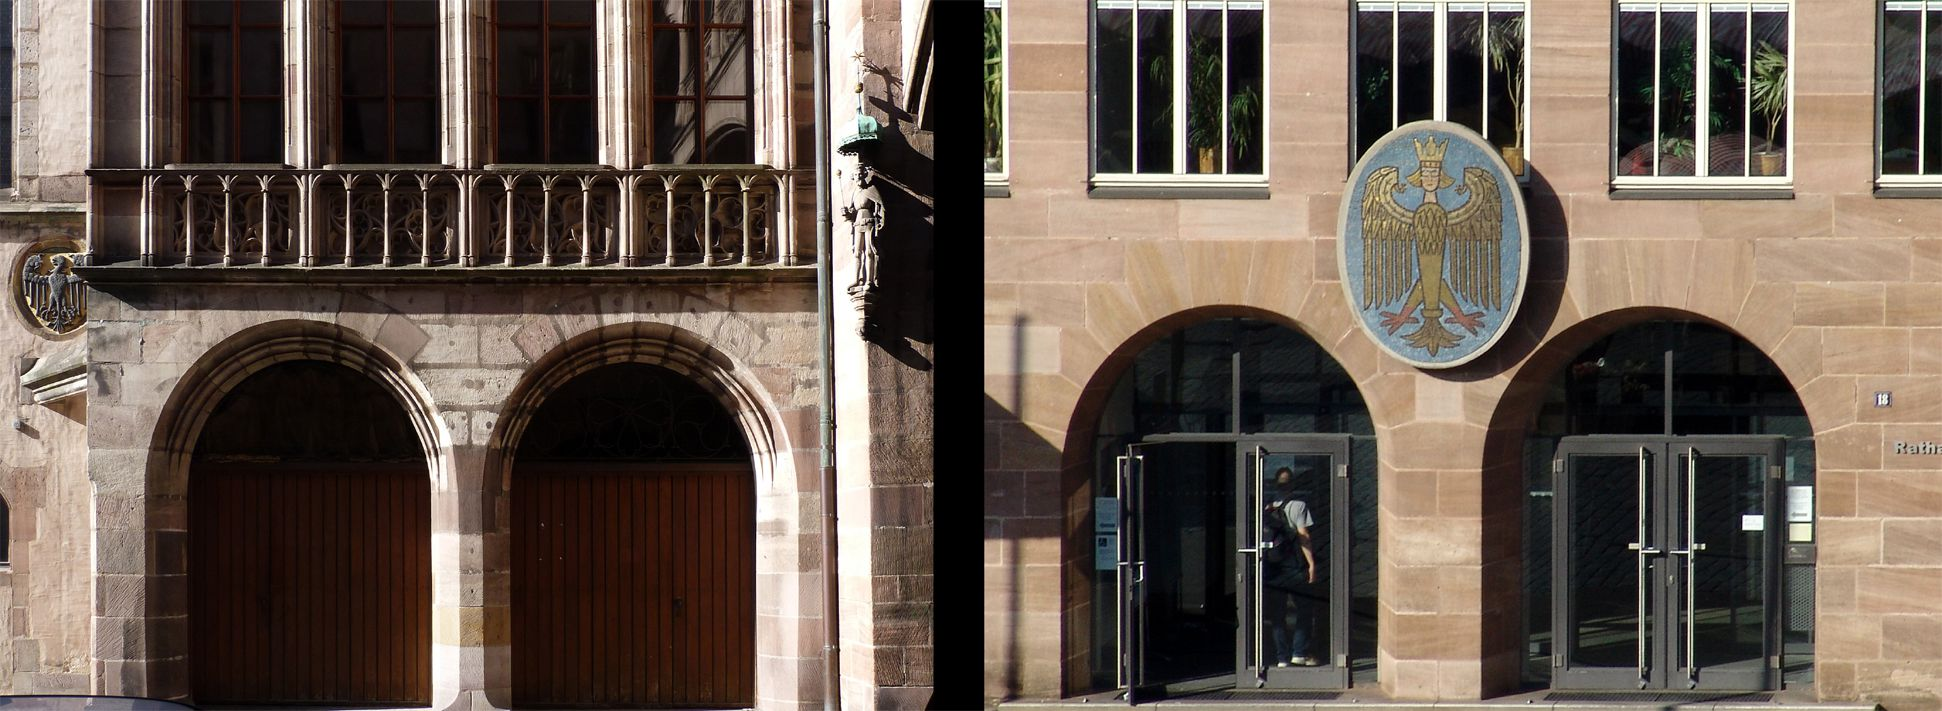 Twin portals of Council Chamber and New City Hall Comparison